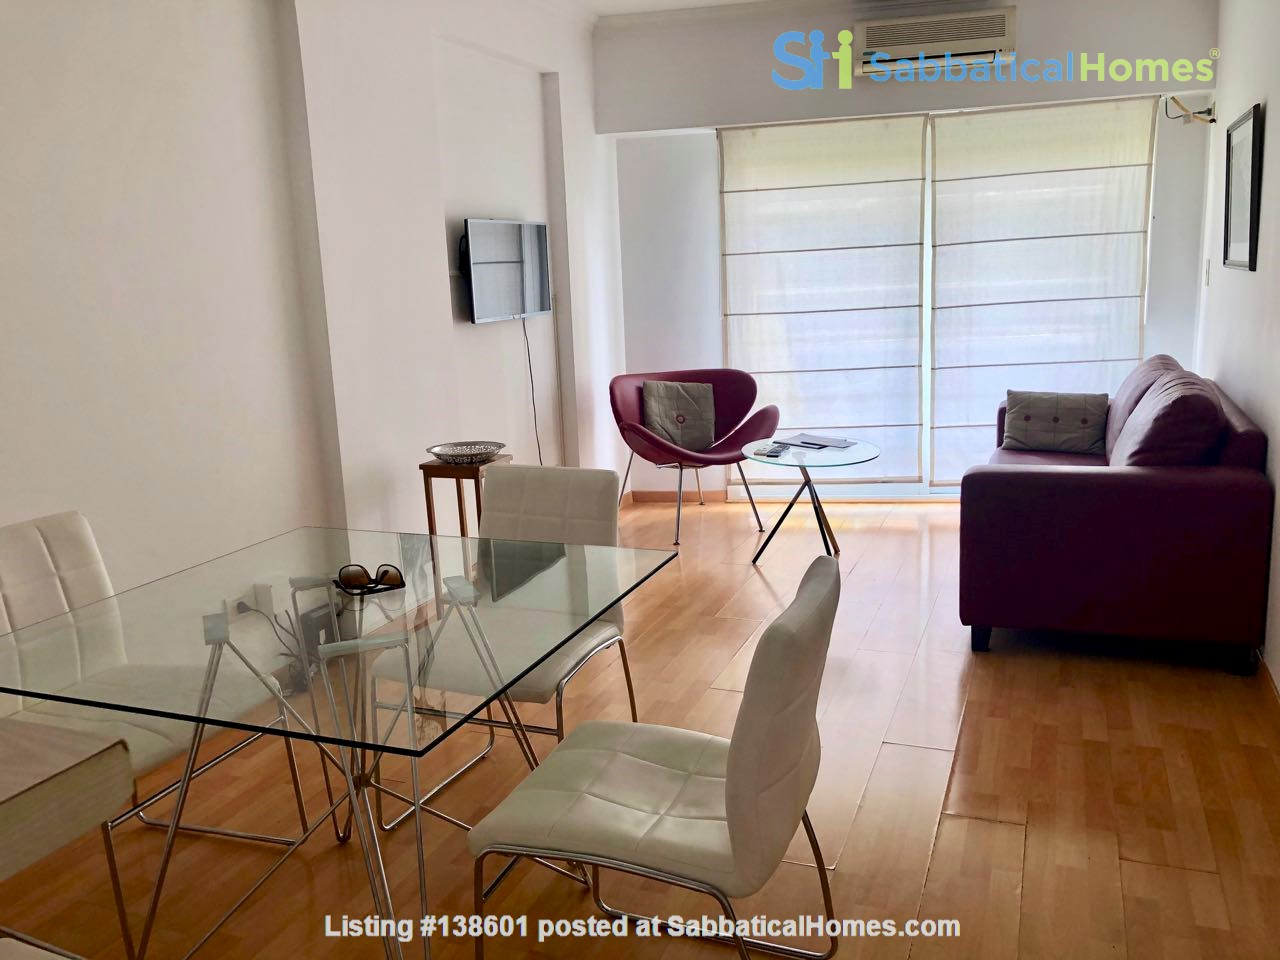 Luminous two bedroom apartment with  two bathrooms and two balconies Home Rental in Comuna 14, Buenos Aires, Argentina 3